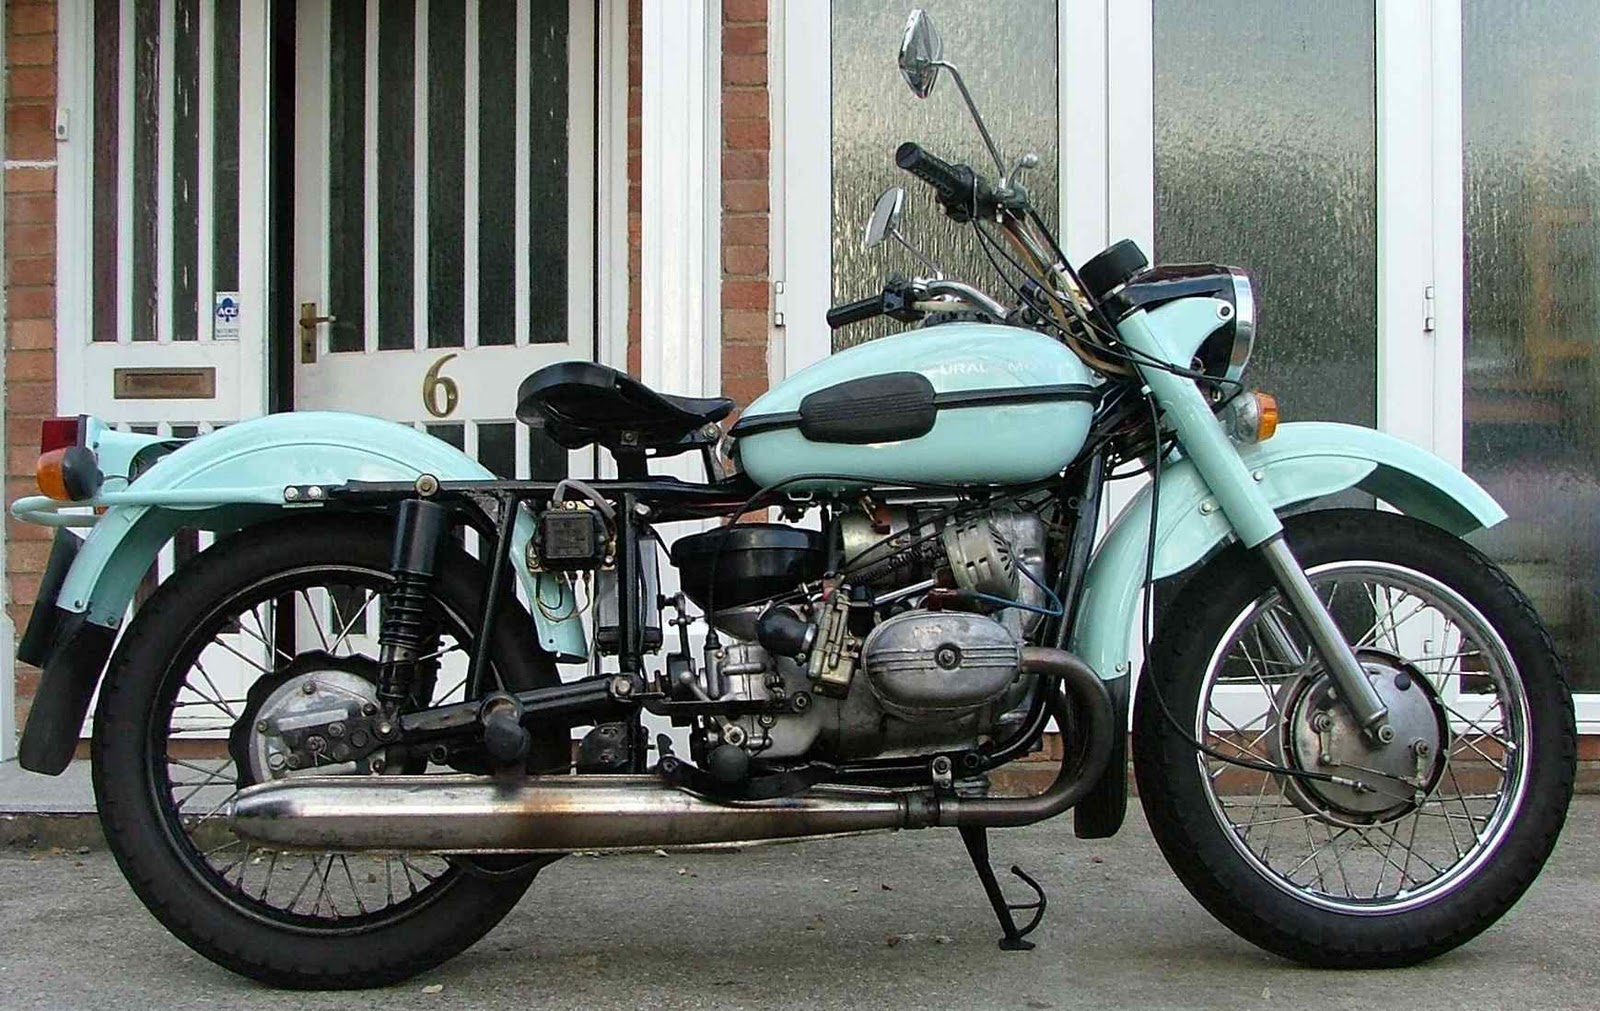 Ural M 66 with sidecar 1975 images #127249